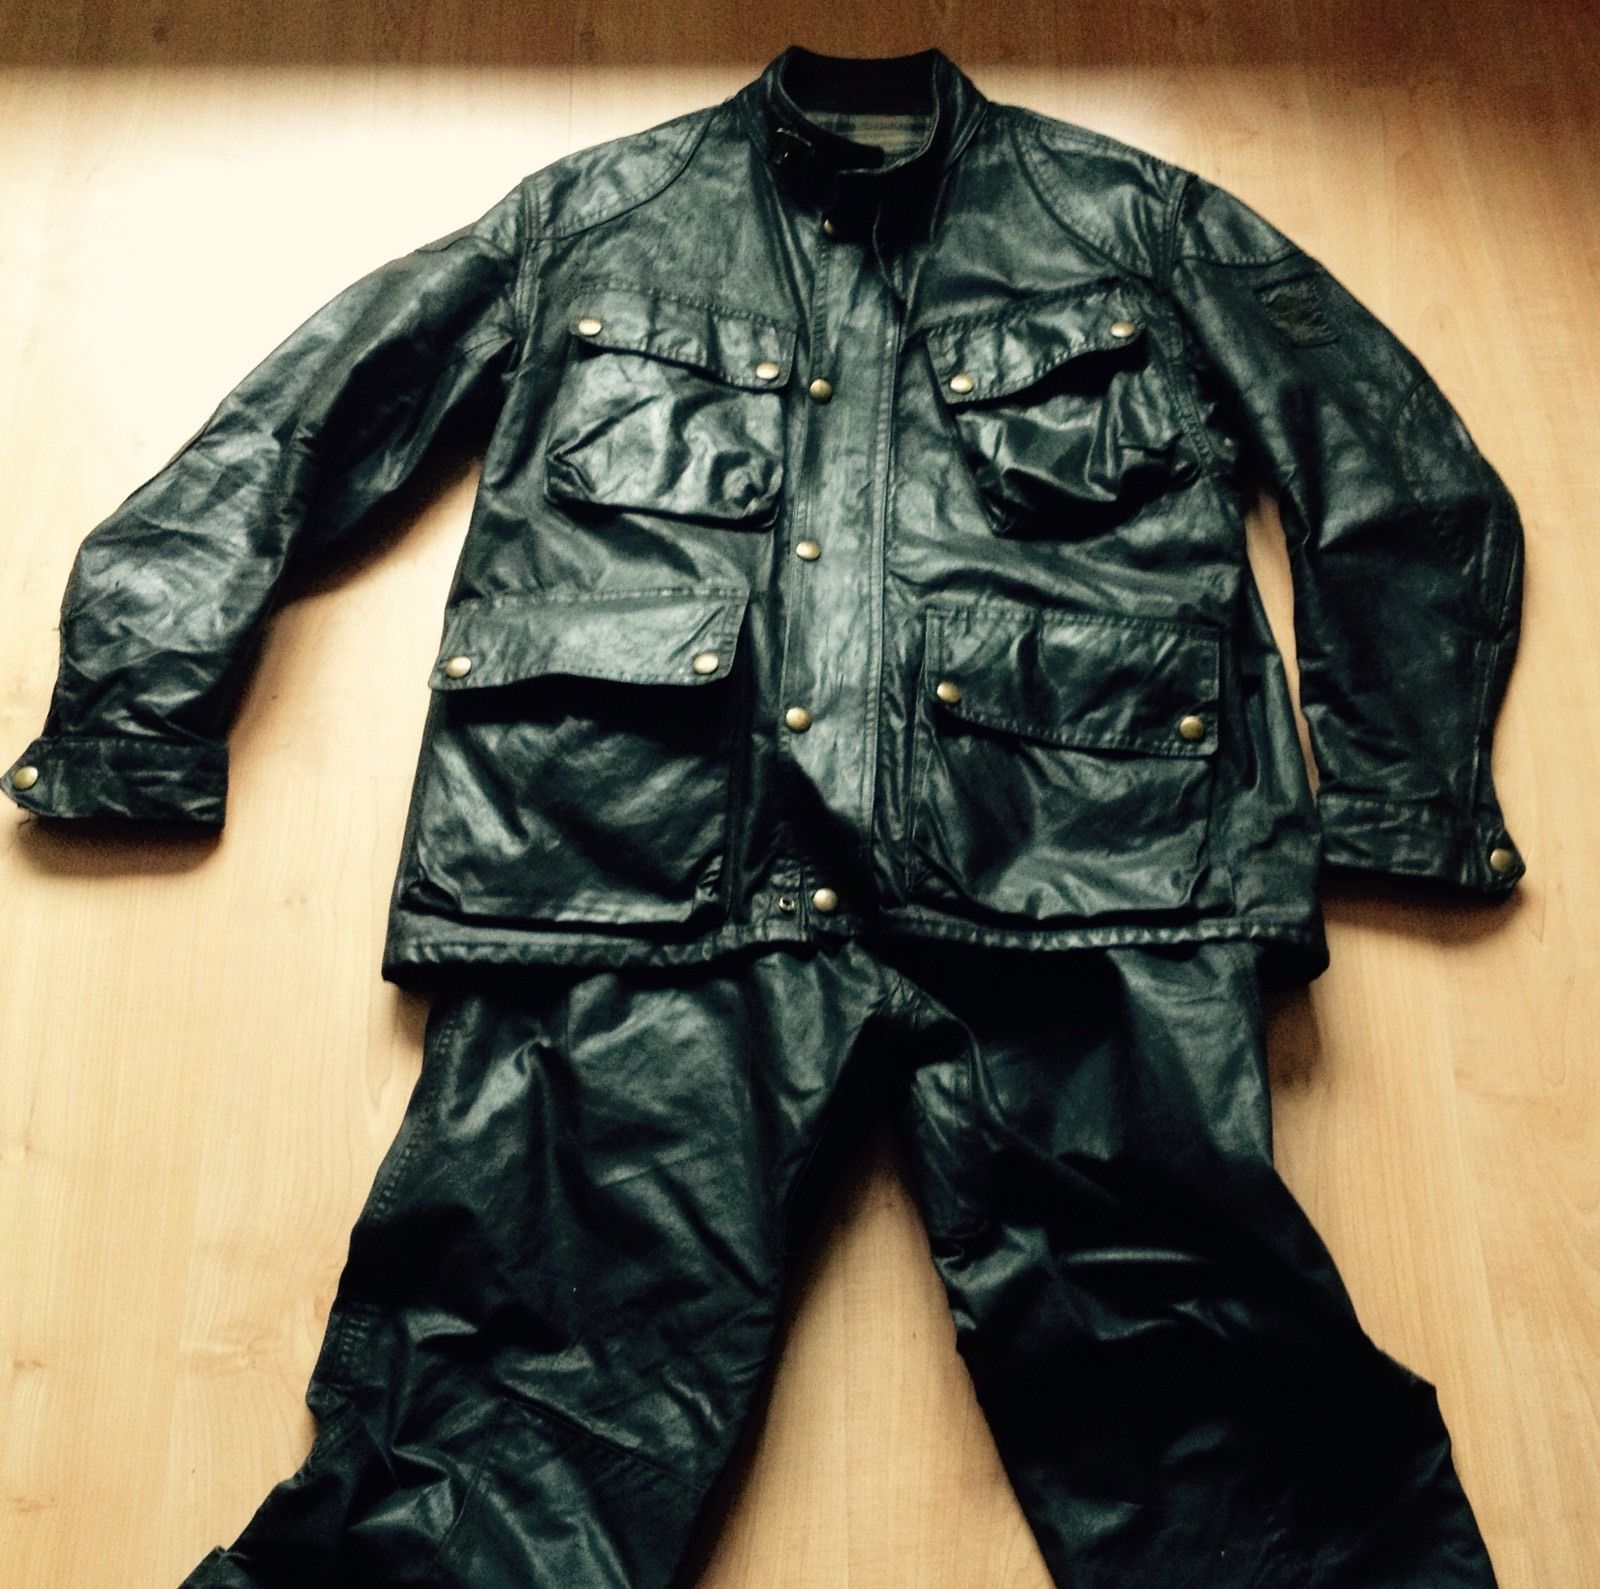 c6c8f2d889d1 Vintage Belstaff Trialmaster Wax Jacket And Trousers 108cm   42 in Clothes